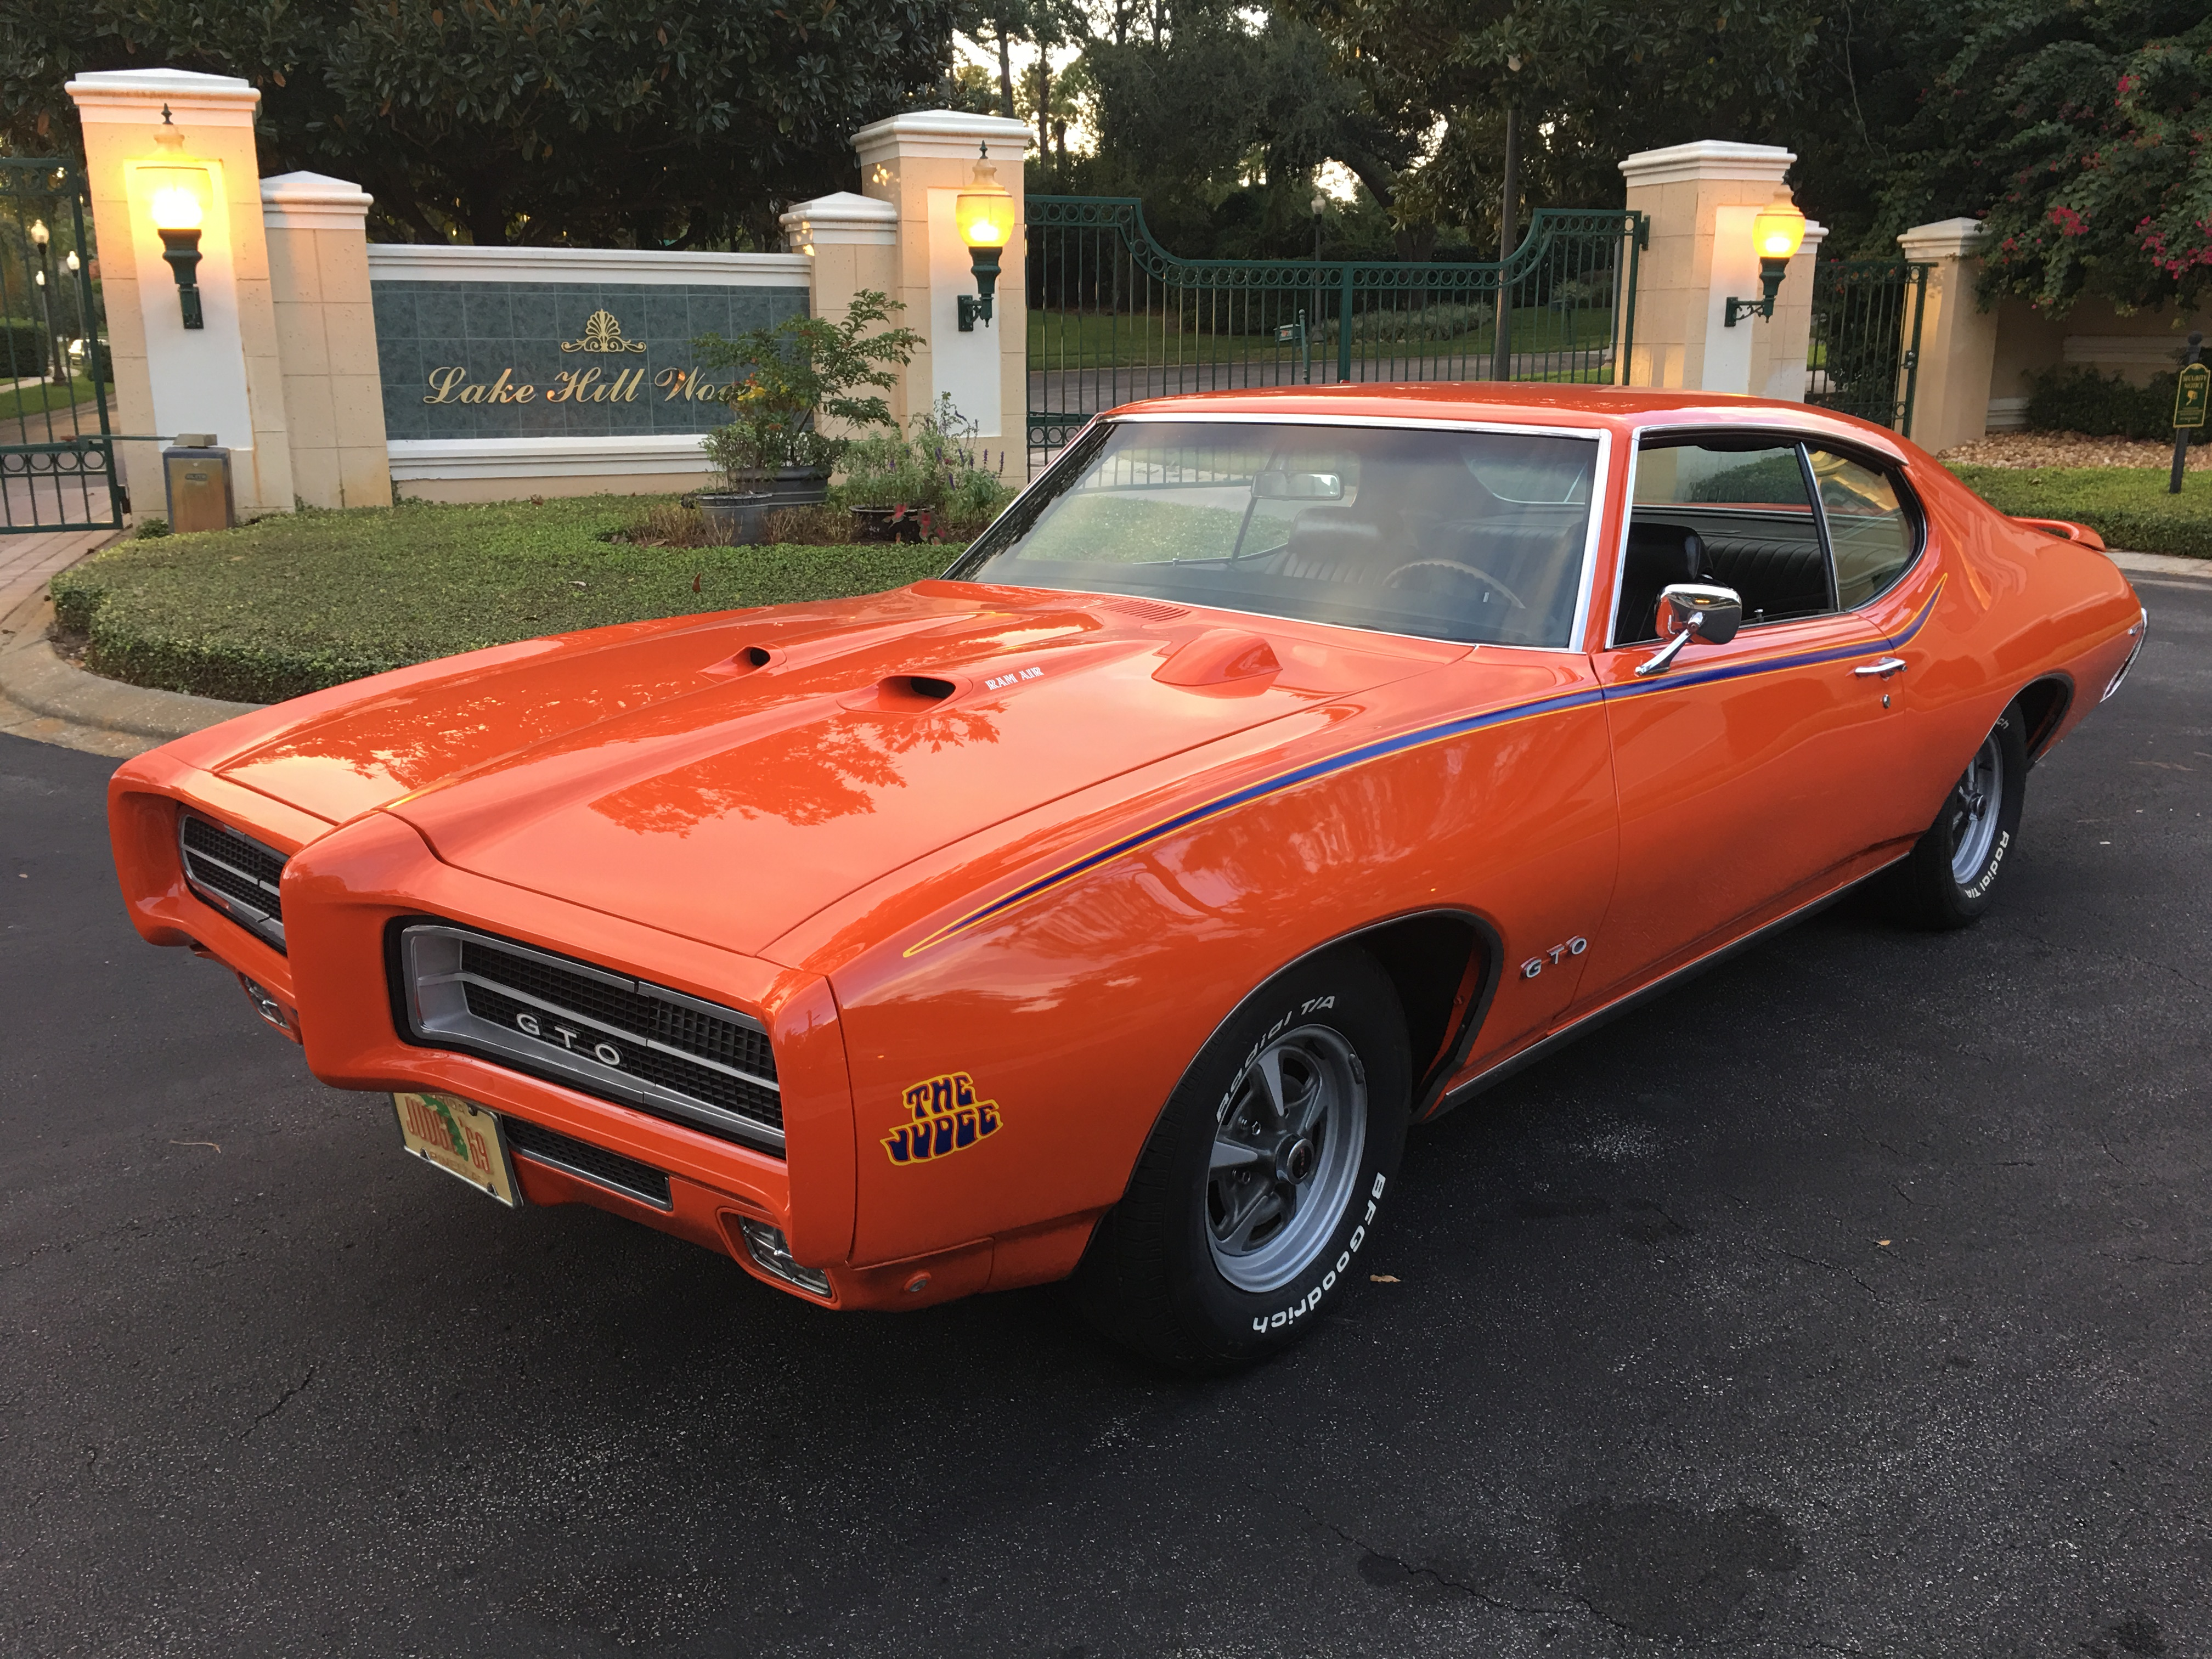 1969 Pontiac GTO Judge 4 Spd A/C PW - SOLD - Vantage Sports Cars ...